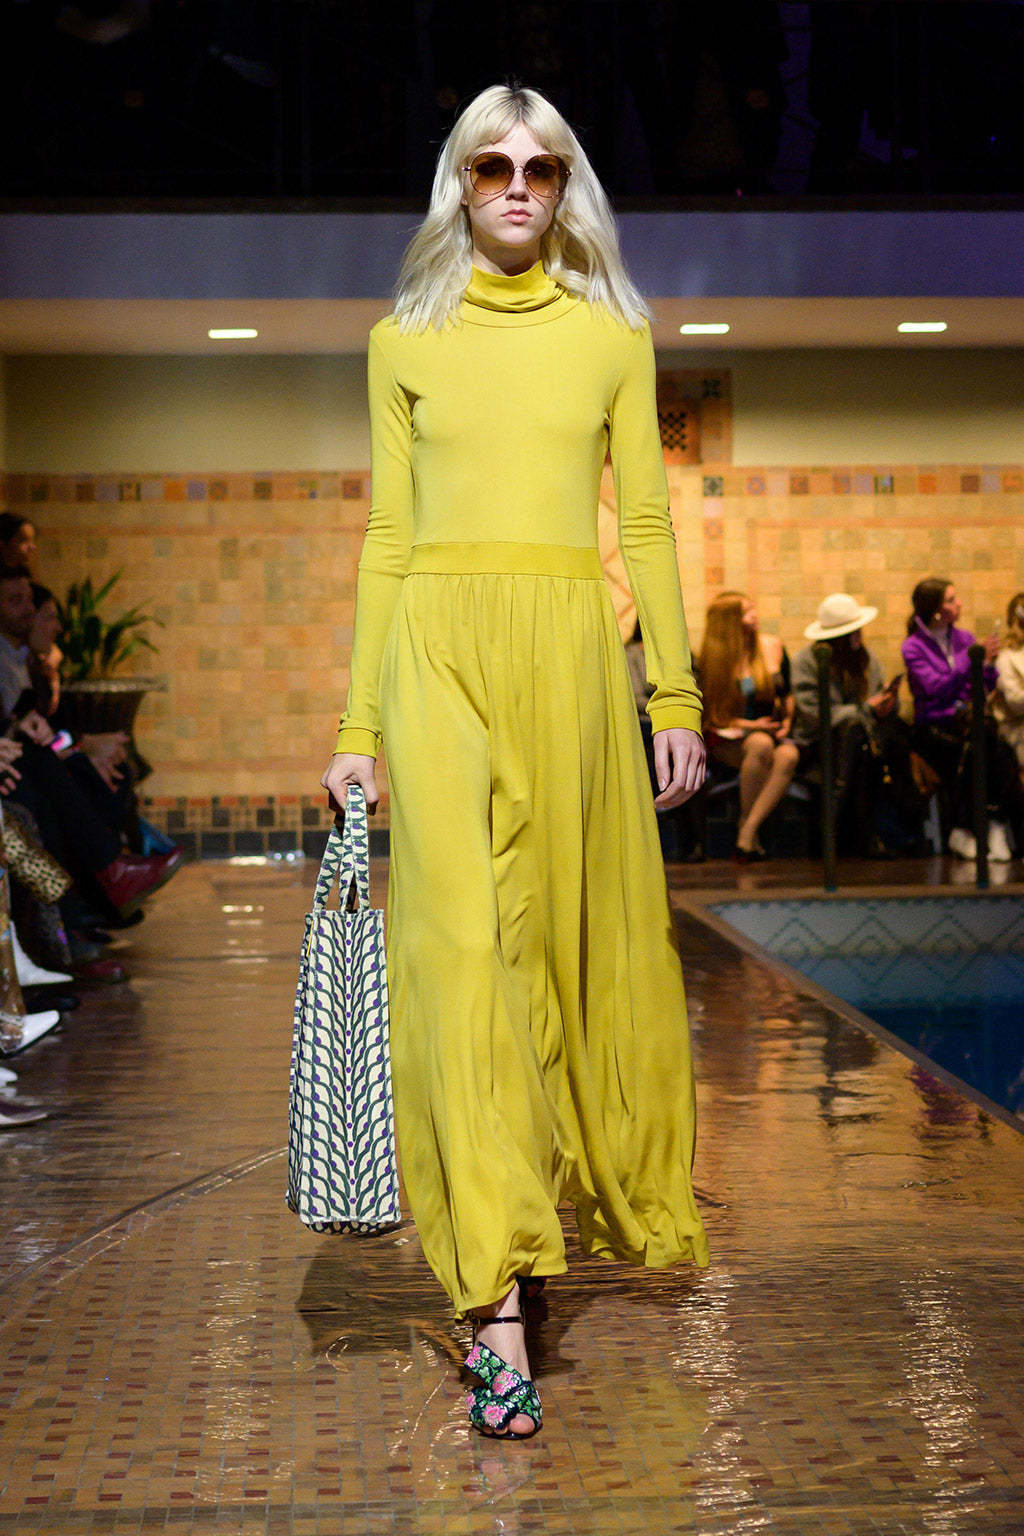 Cynthia Rowley Fall 2019 look 26 featuring a yellow long sleeve maxi dress with turtleneck